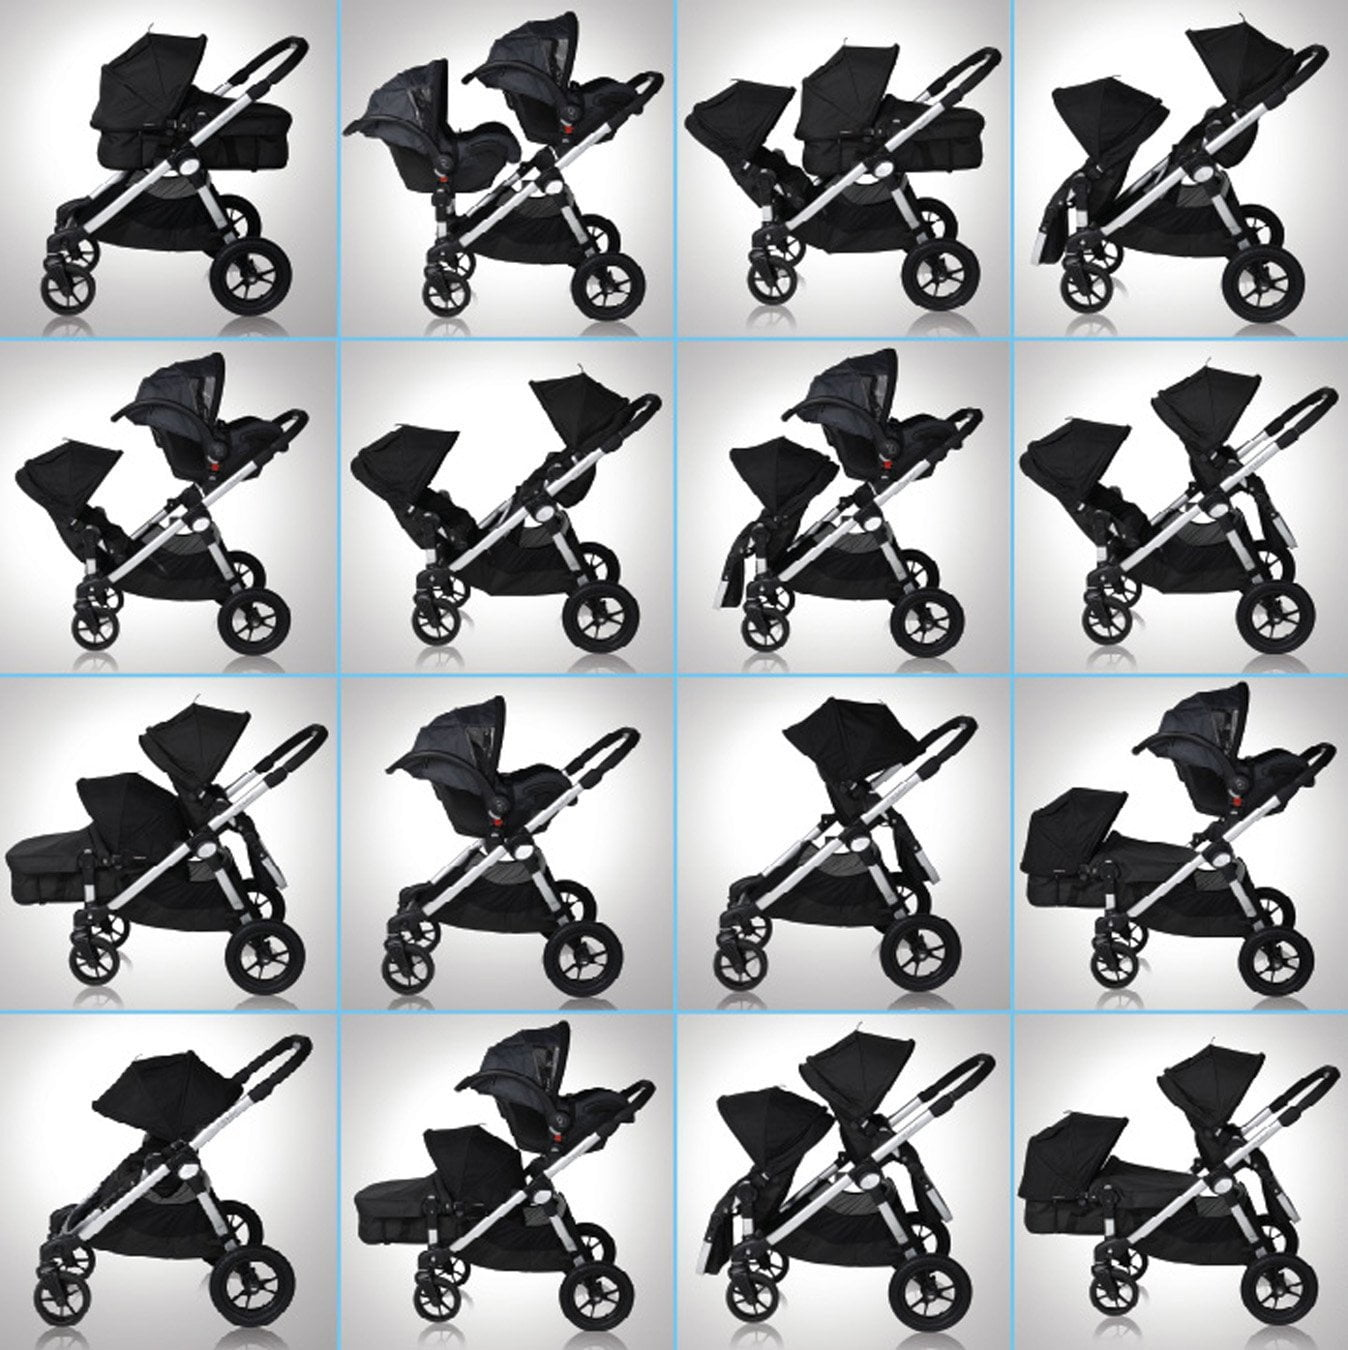 Baby bed online malaysia - Baby Jogger City Select Twin Stroller Baby Needs Online Store Malaysia